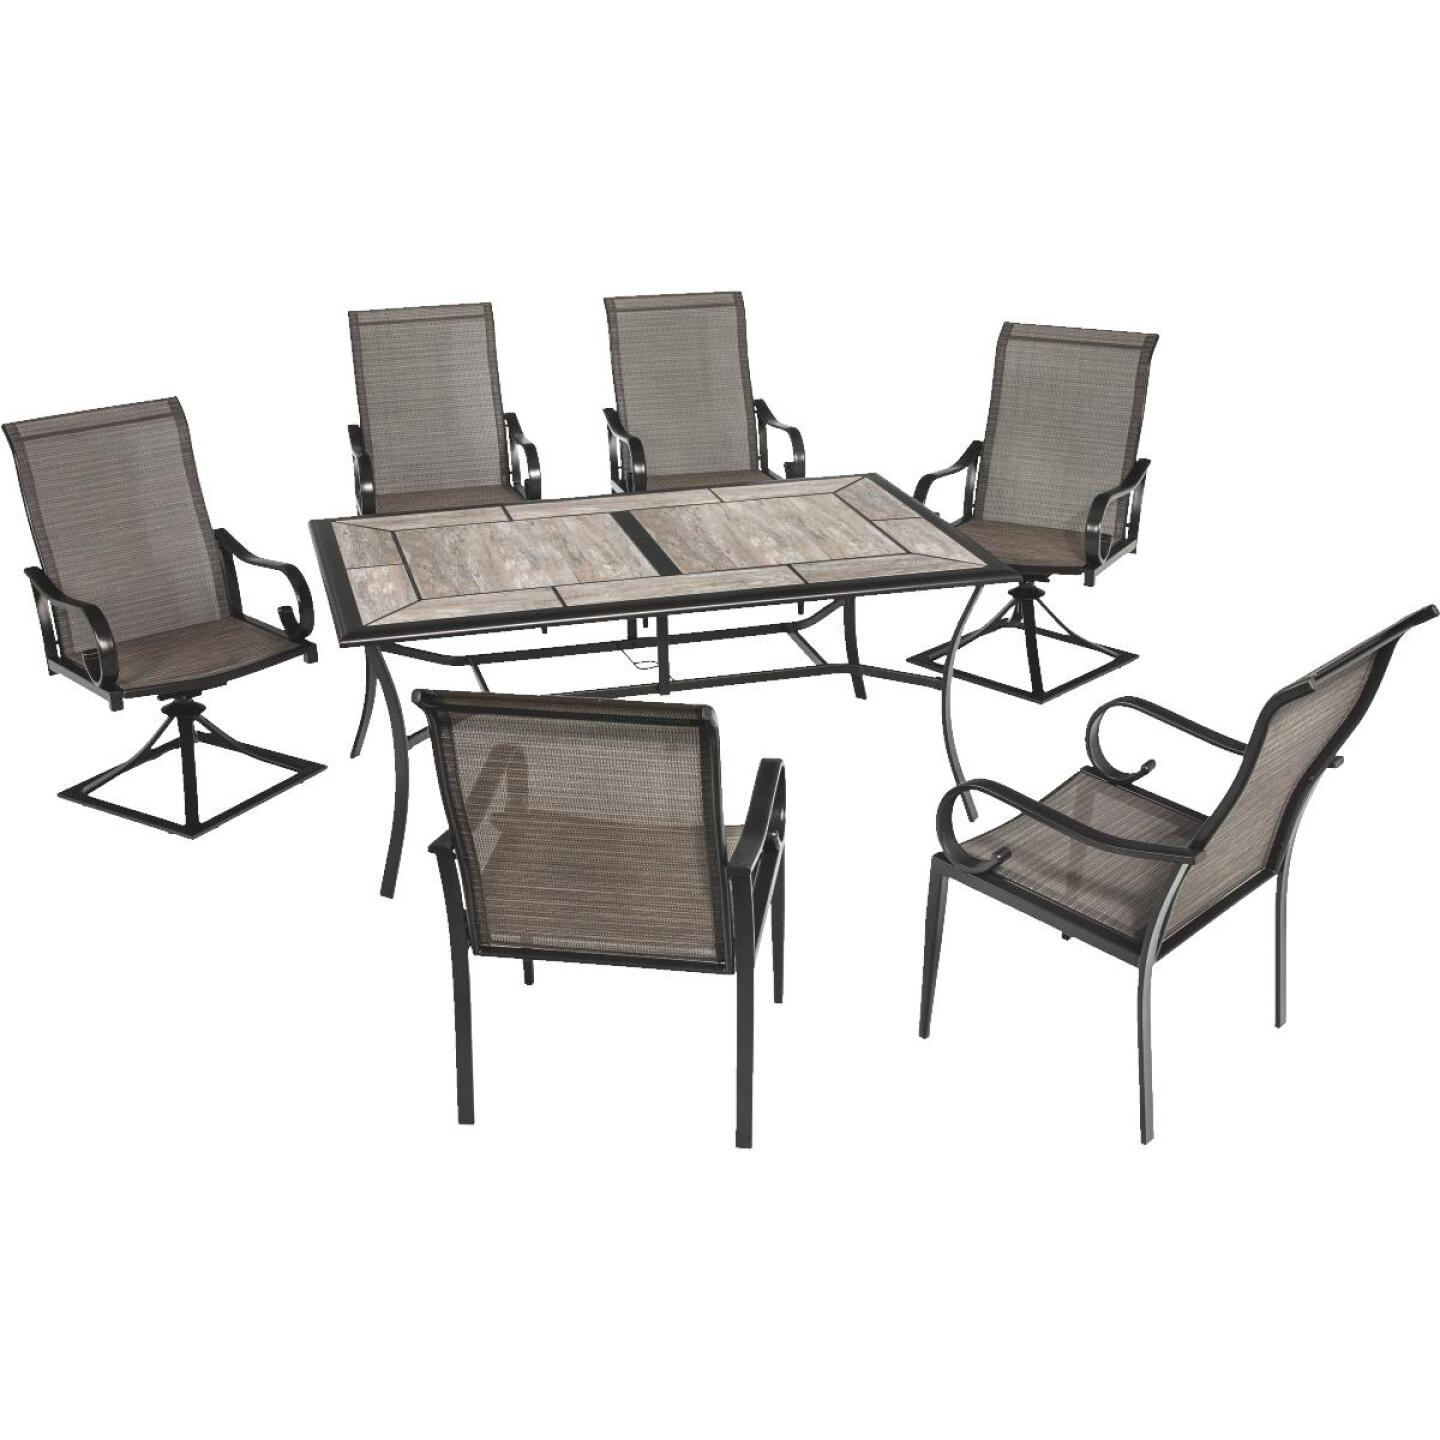 Outdoor Expressions Berkshire 7-Piece Dining Set Image 341